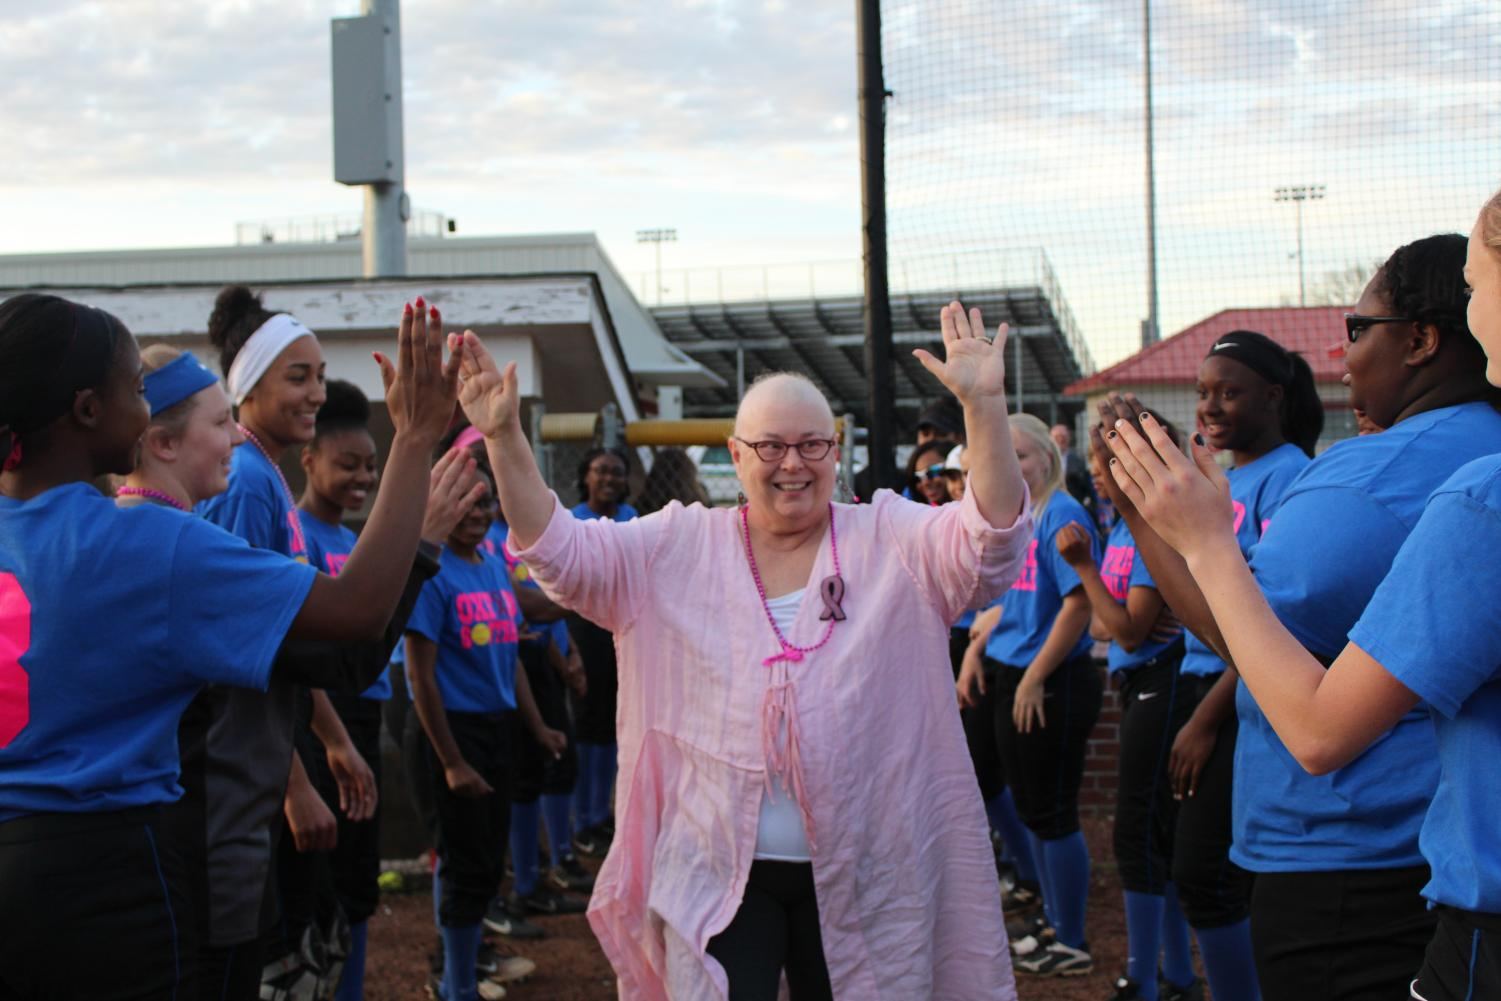 Dr. Barbara Lowe walks through the team huddle giving the players high fives. This is the team's first year helping with the event.